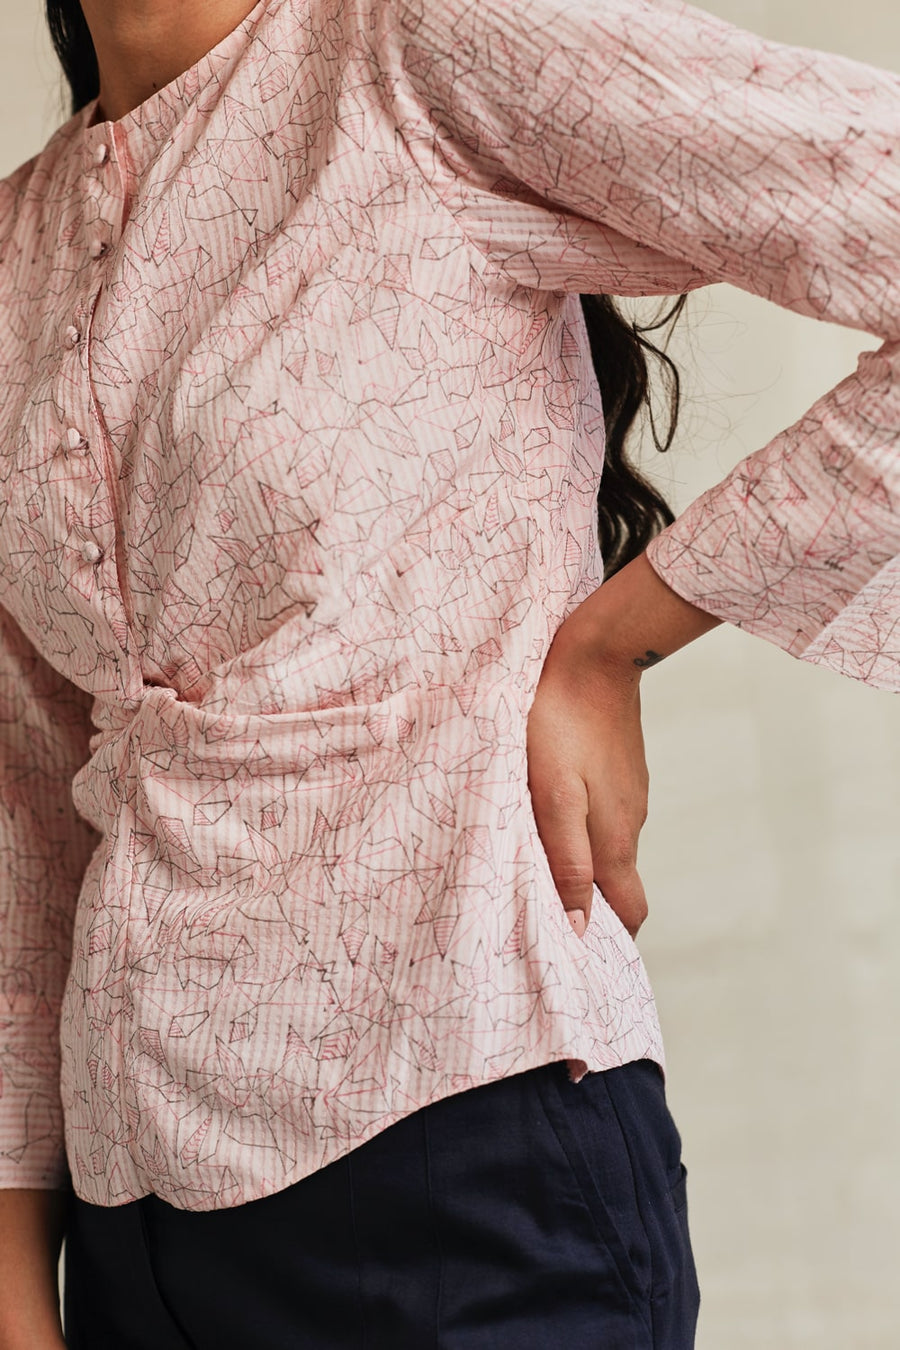 Rosé Dreams Twist Shirt - Ethical made fashion - onlyethikal